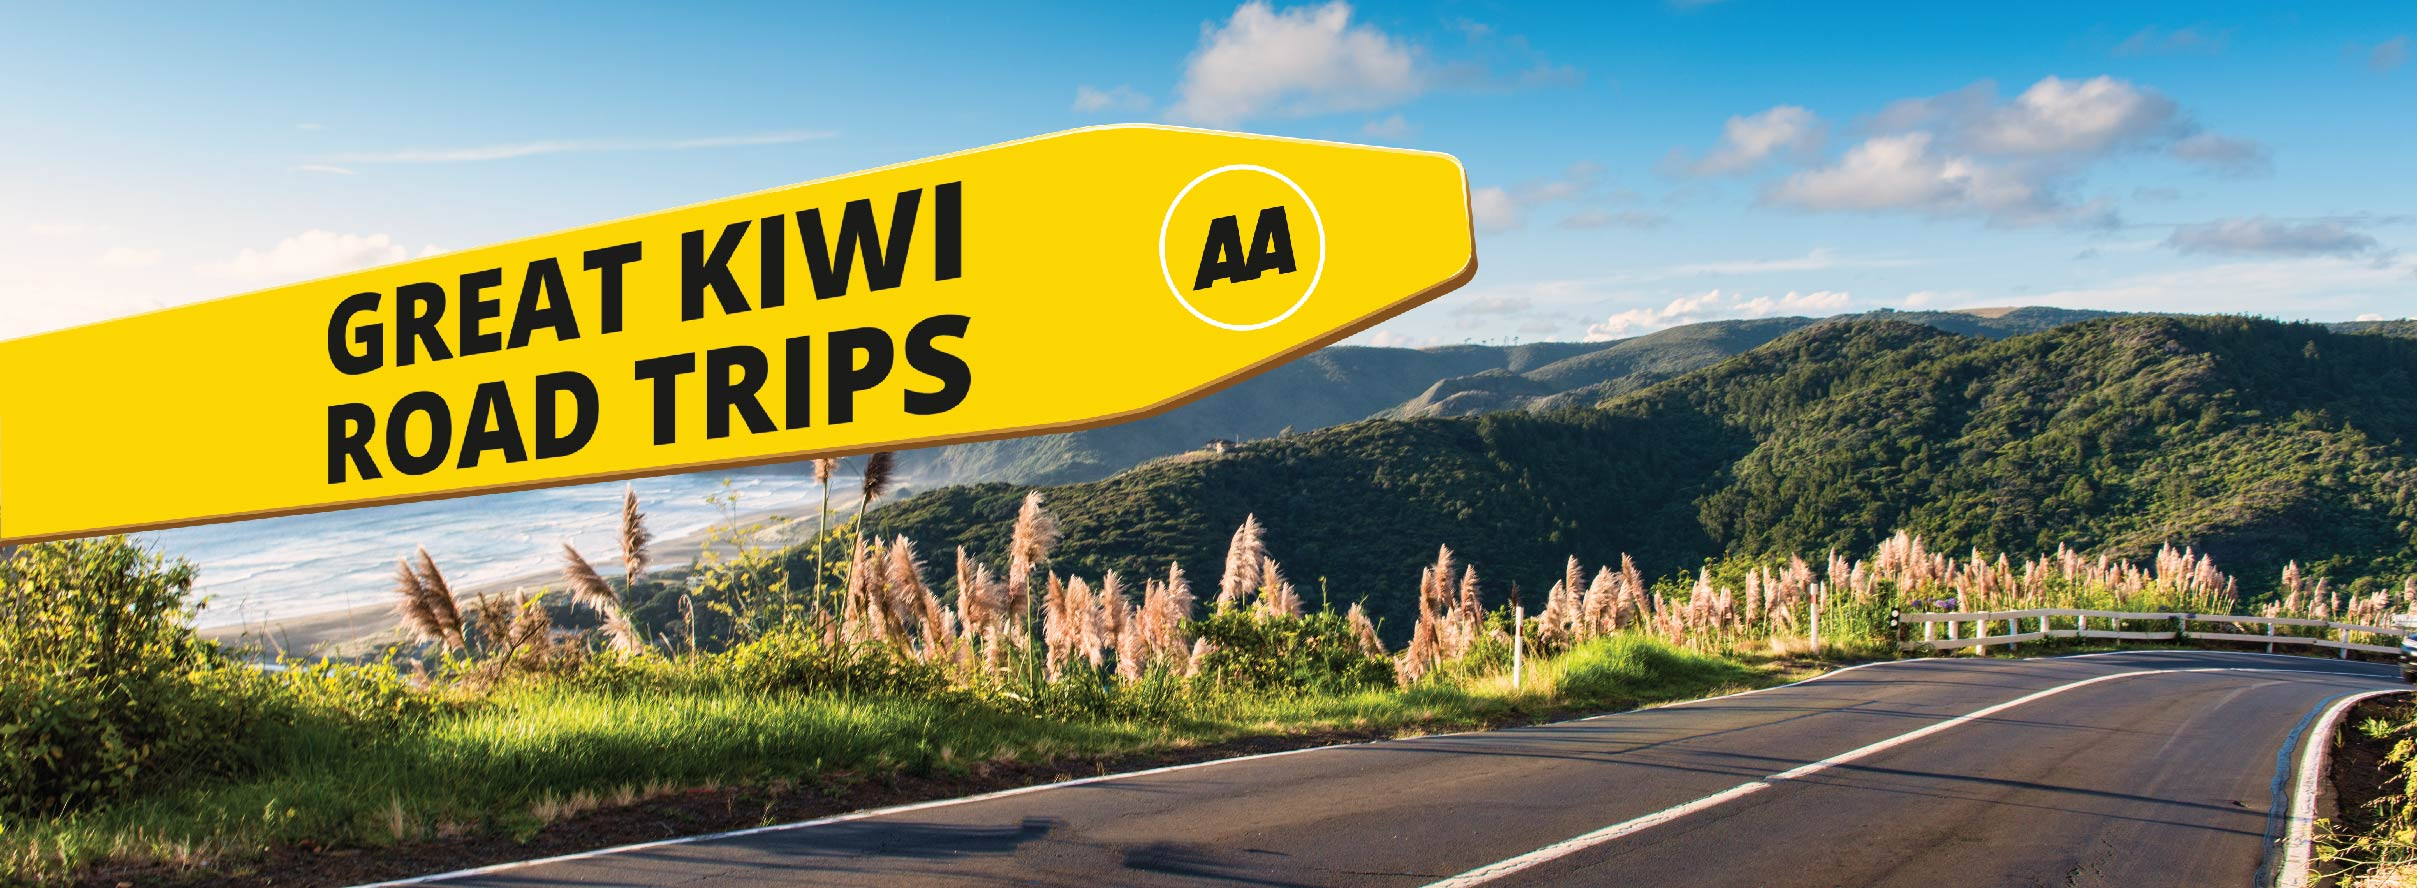 AA Great Kiwi Road Trips Banner v2